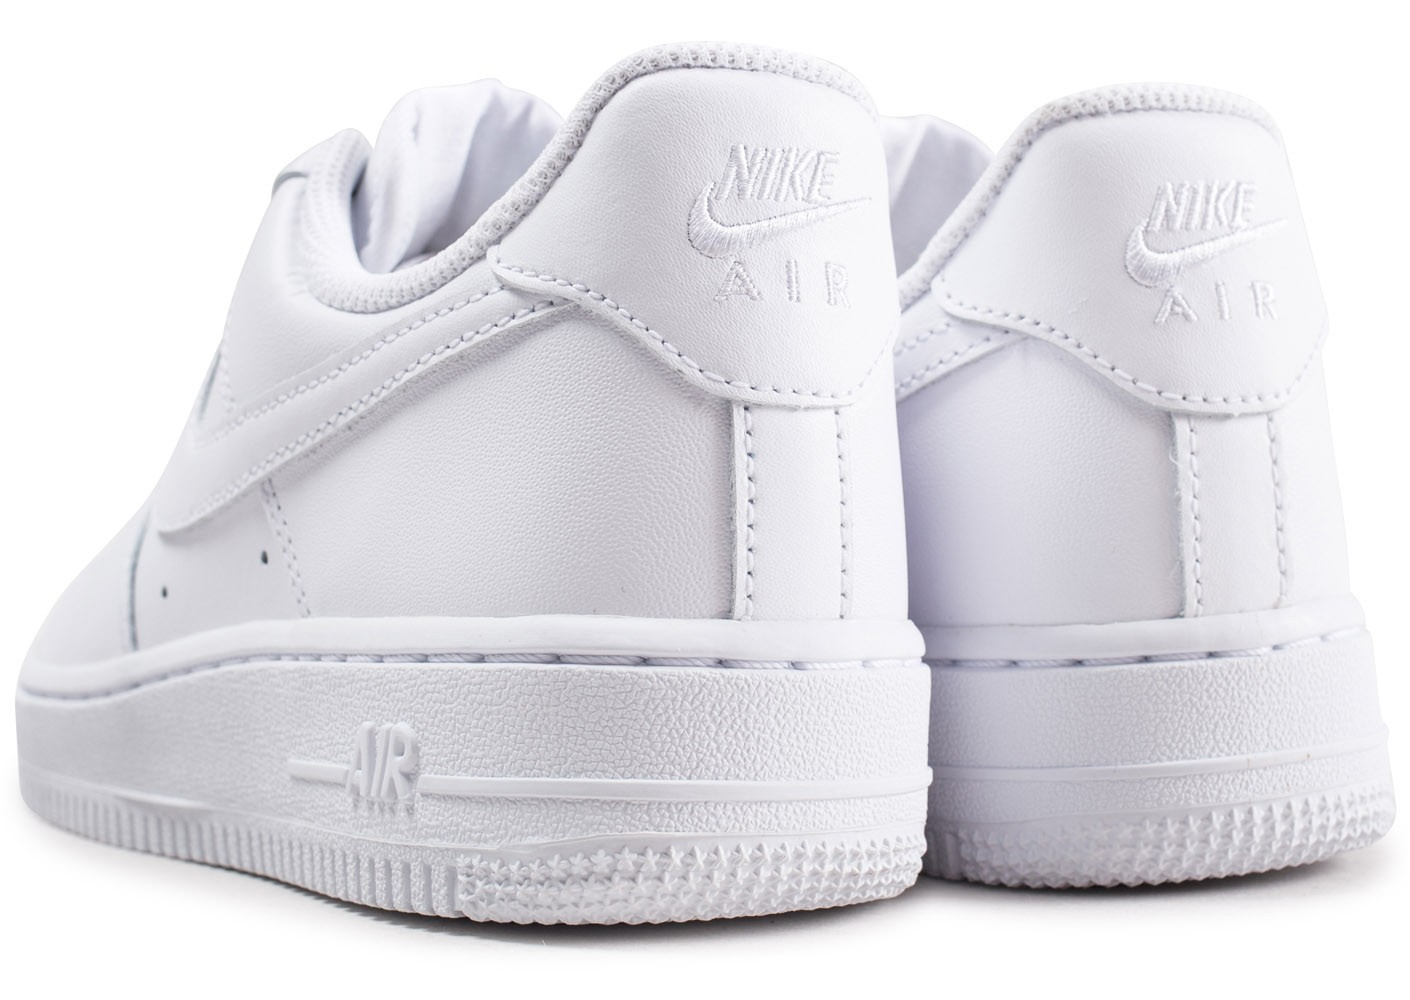 Nike Air Force 1 '07 blanche femme - Chaussures Baskets femme - S3tel